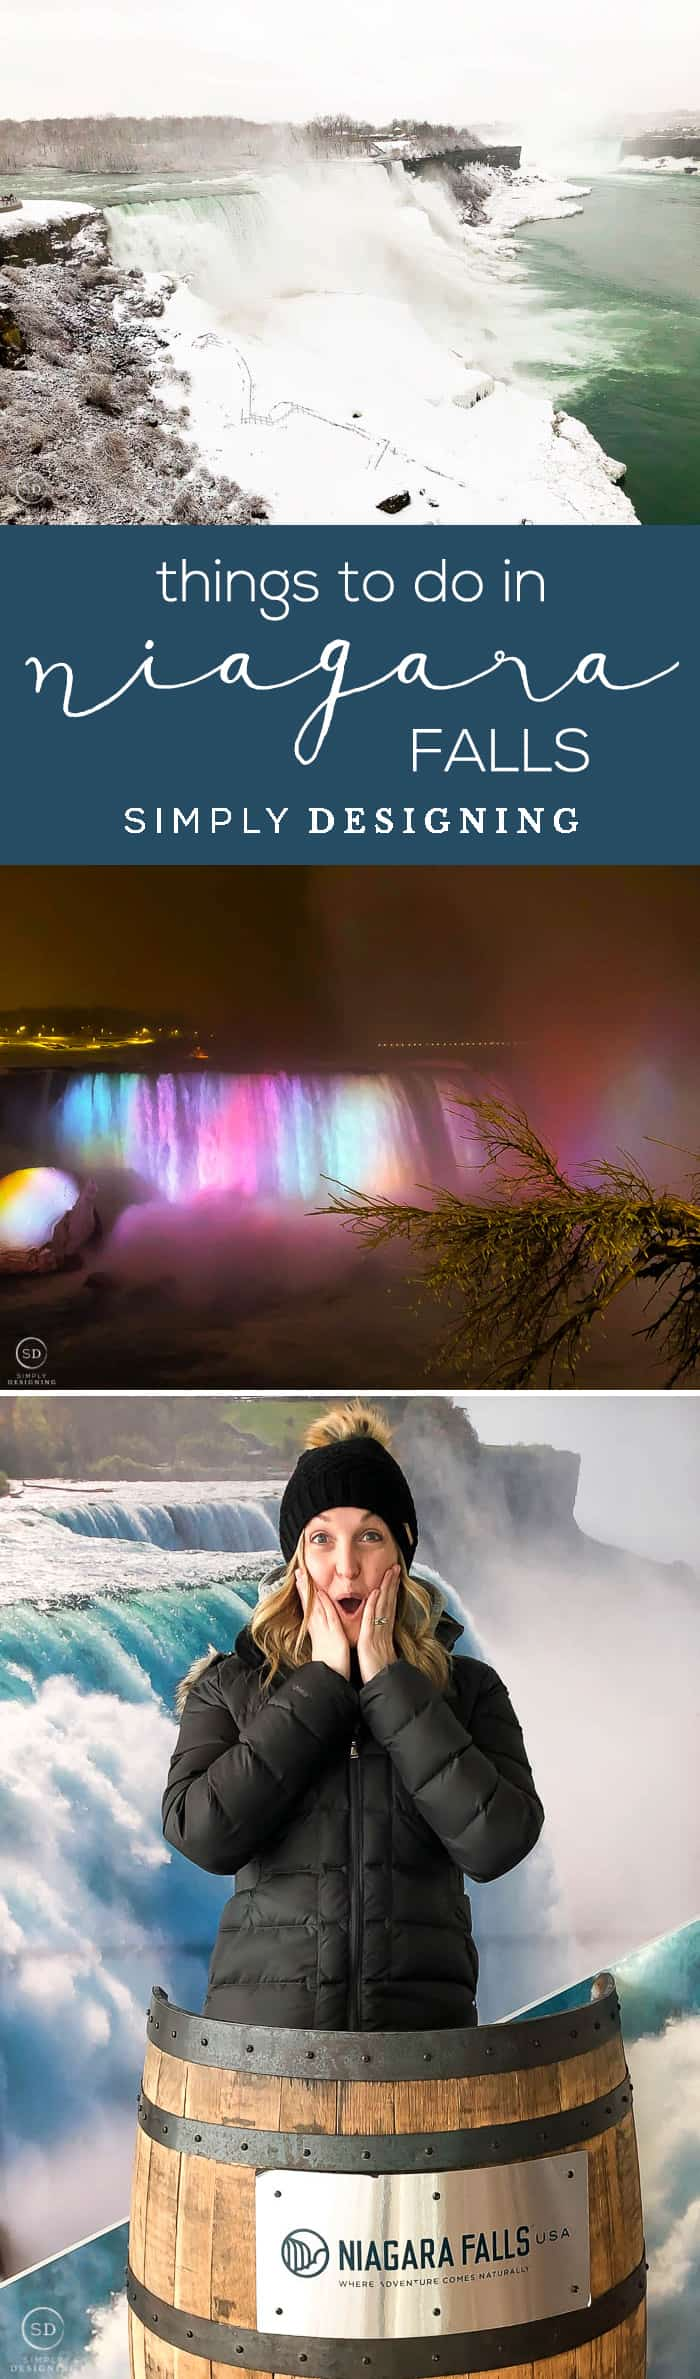 Things to do in Niagara Falls - I am sharing what to do in Niagara Falls during any time of year - kid friendly things to do at niagara falls